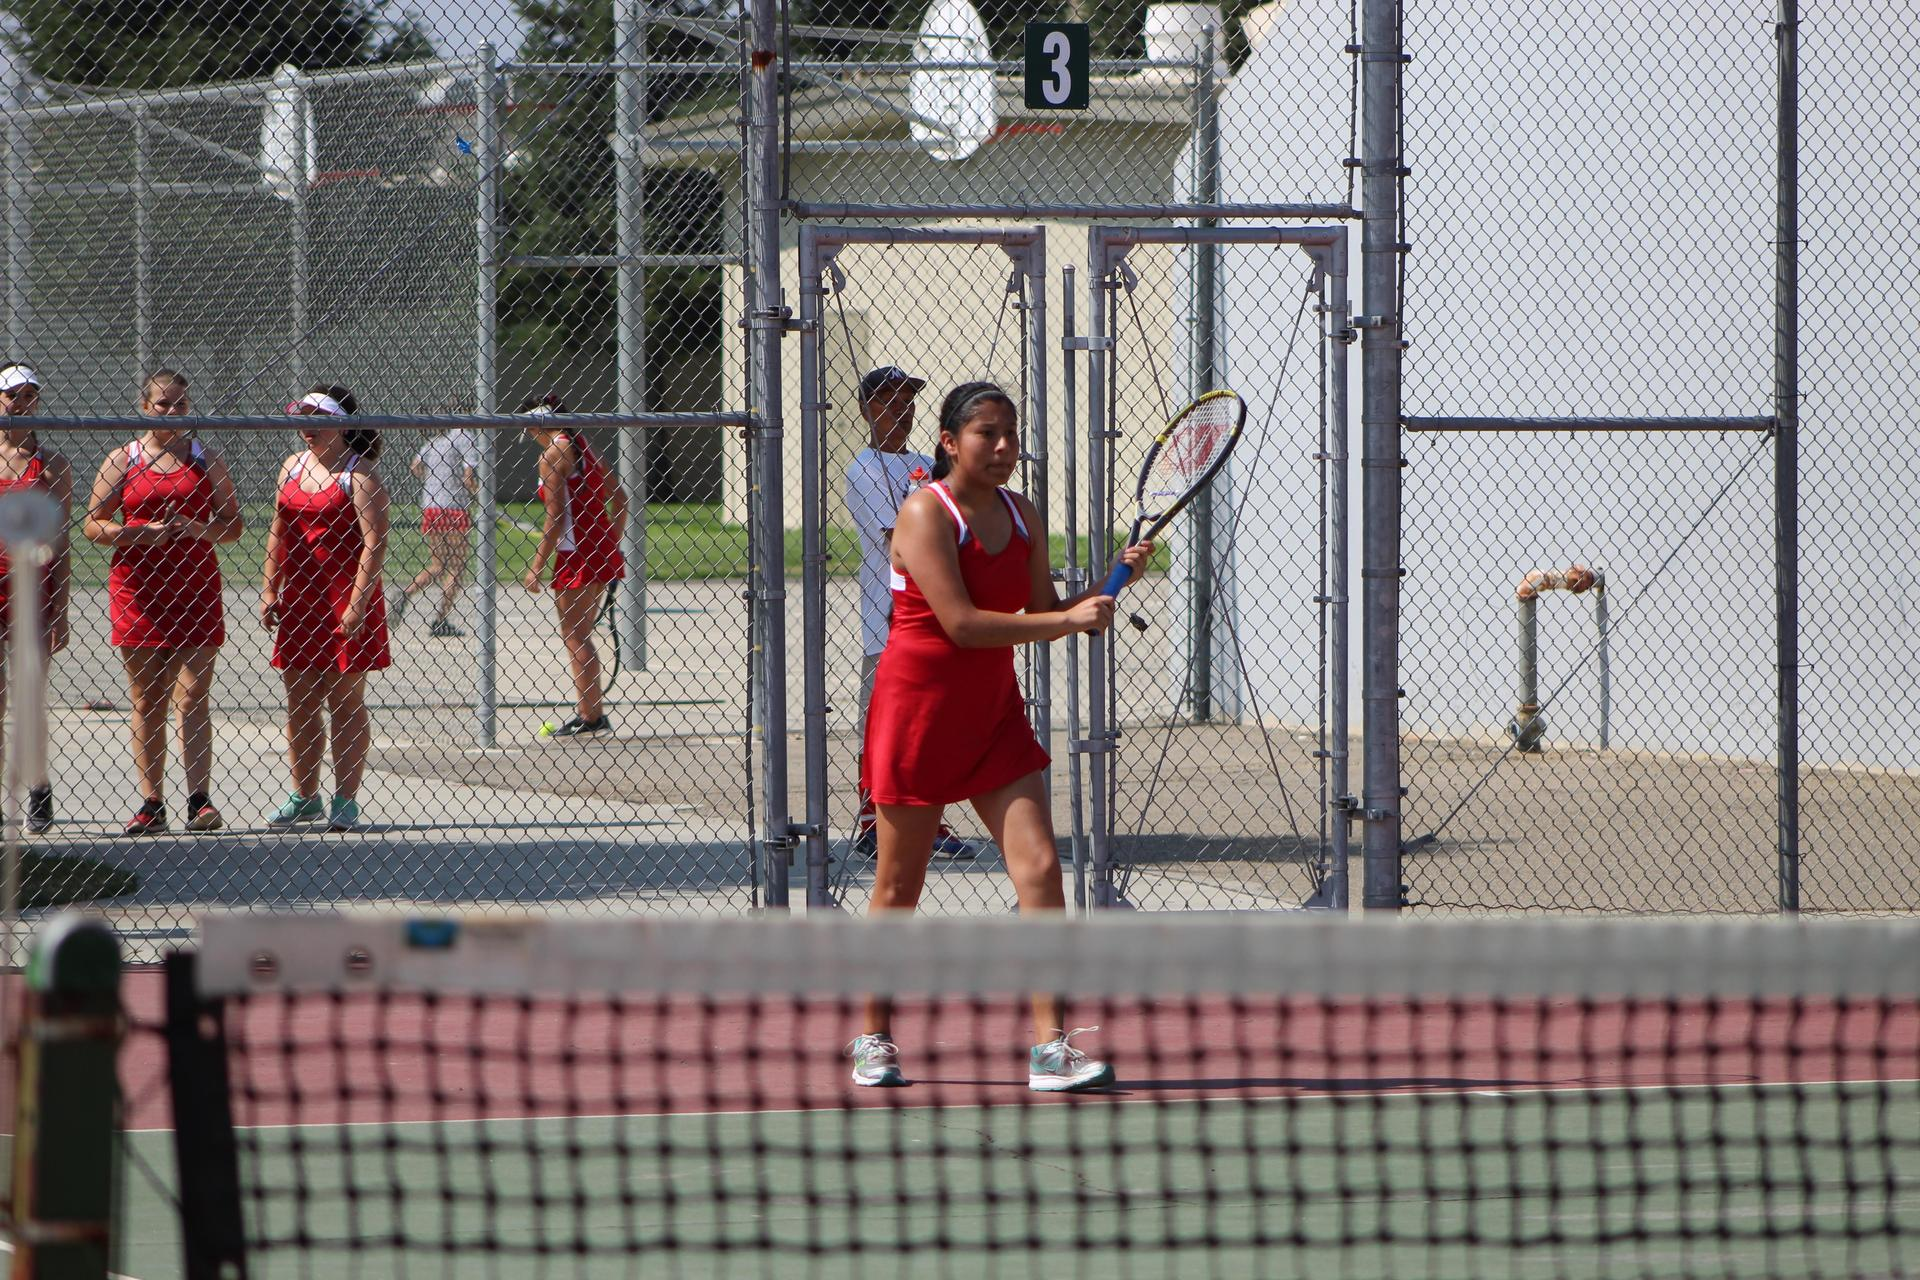 Girls playing tennis vs McLane